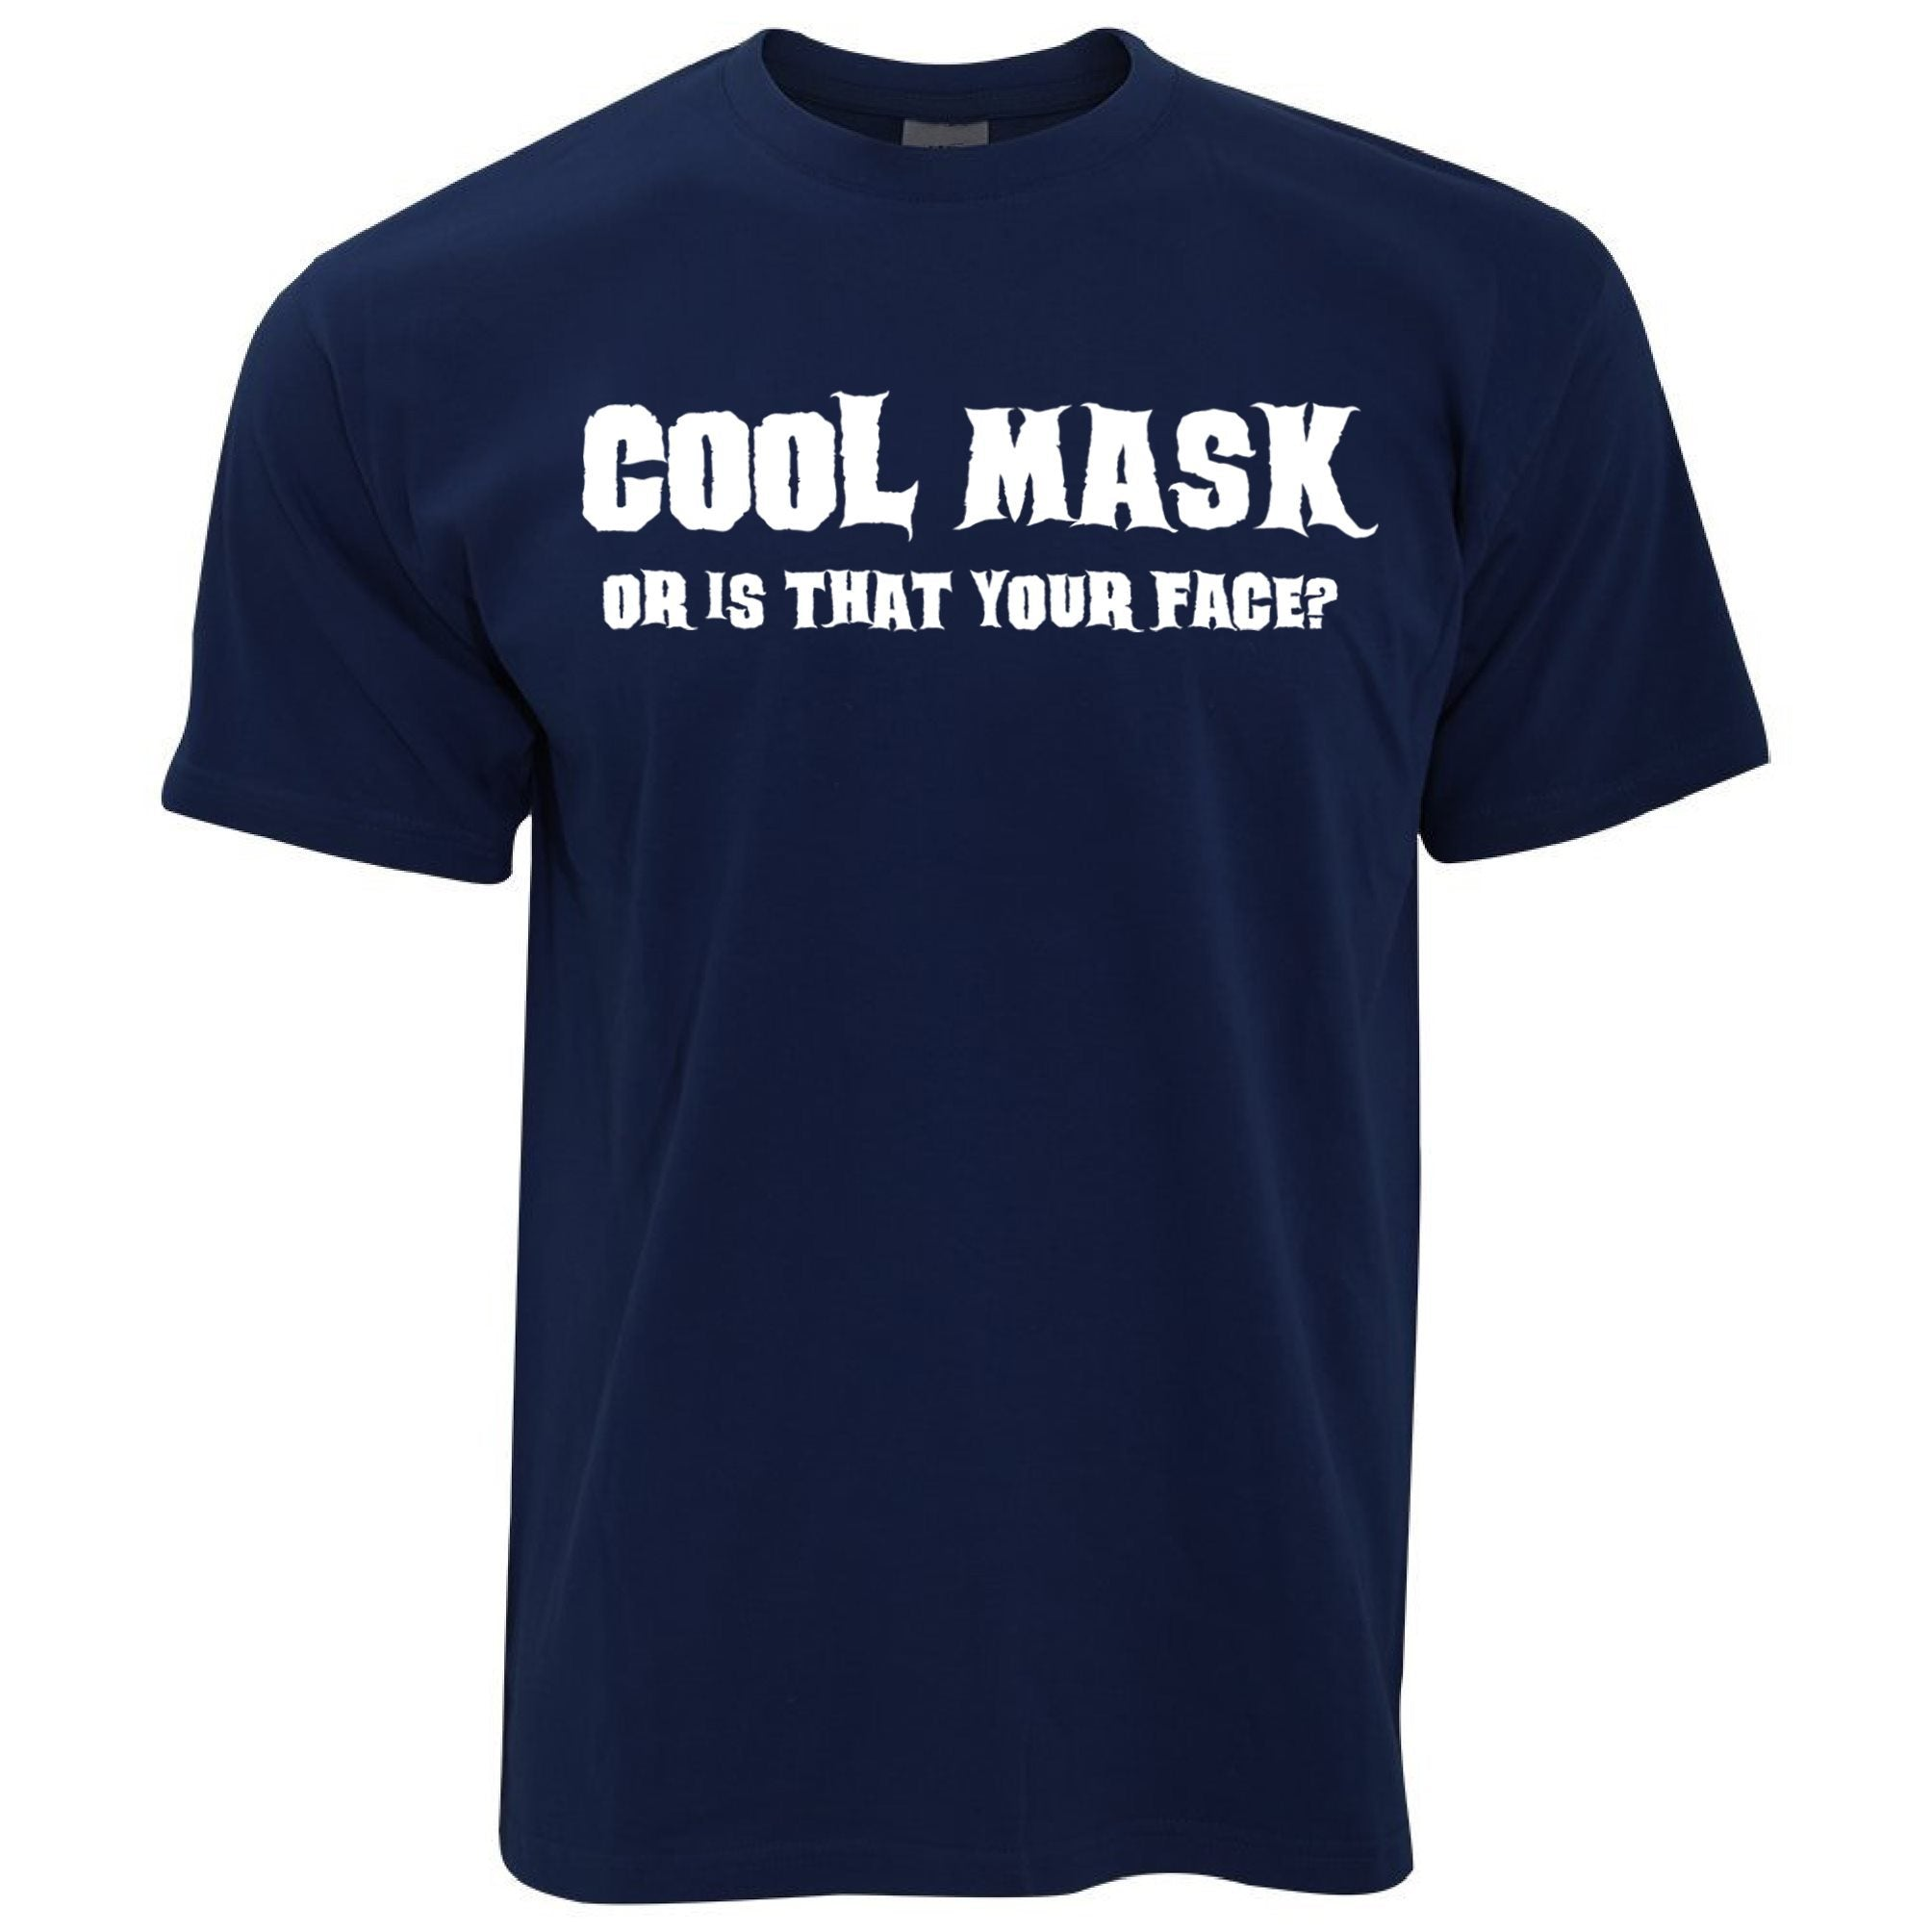 Sassy Halloween T Shirt Cool Mask Or Is That Your Face